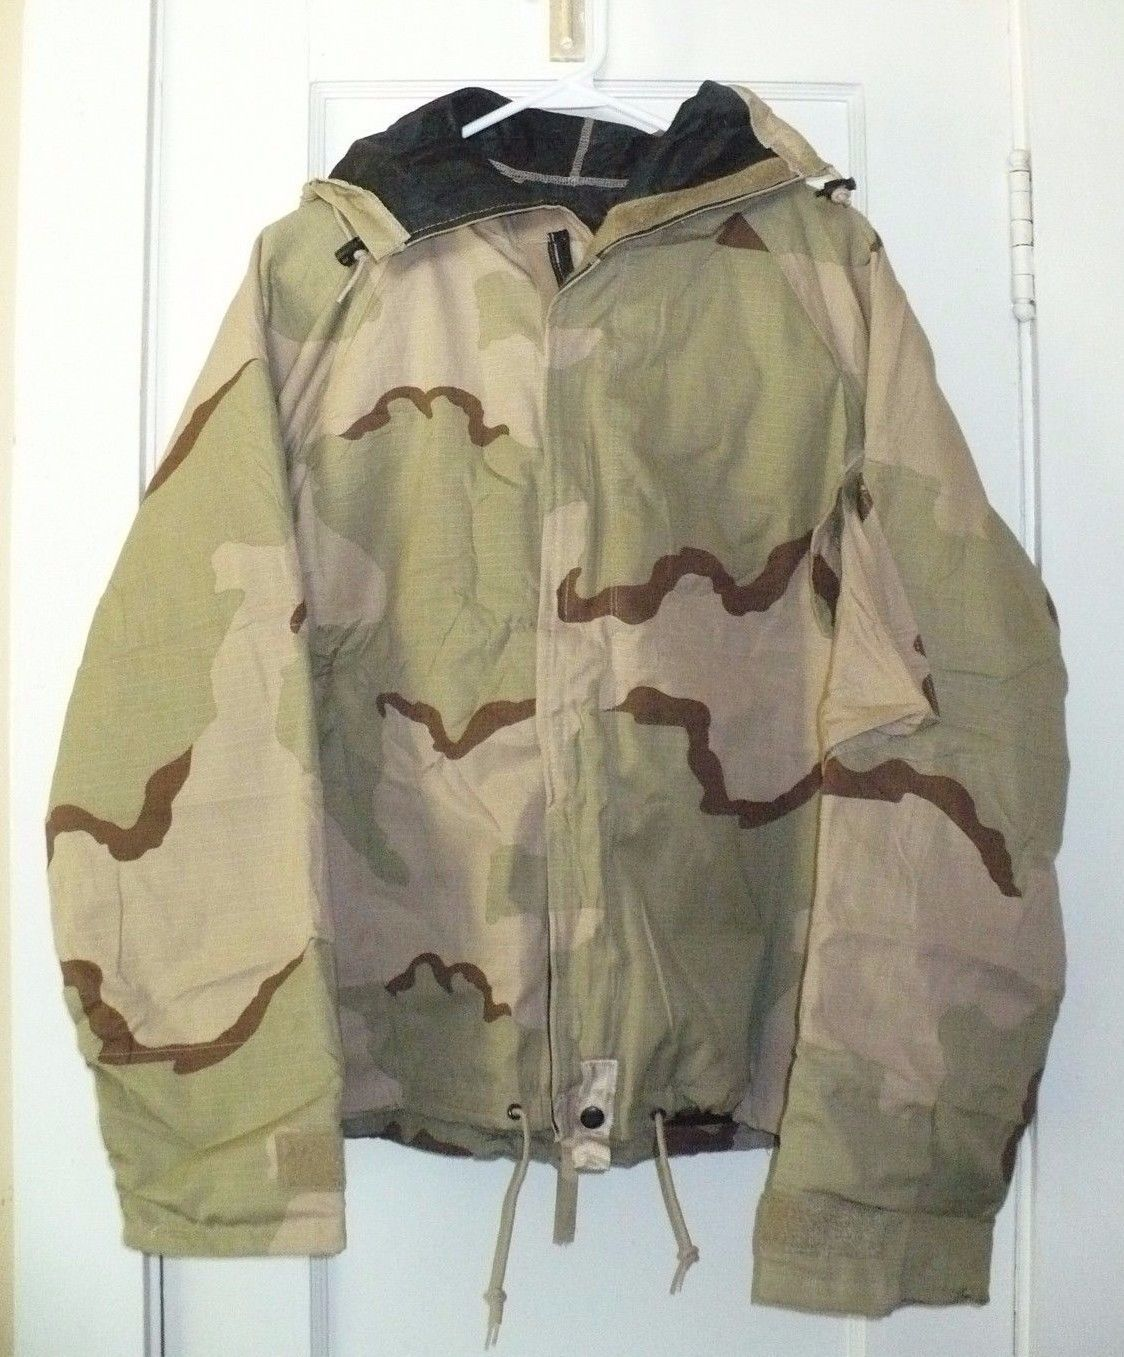 NATO Army Desert Camo MOPP NBC Chemical and 50 similar items